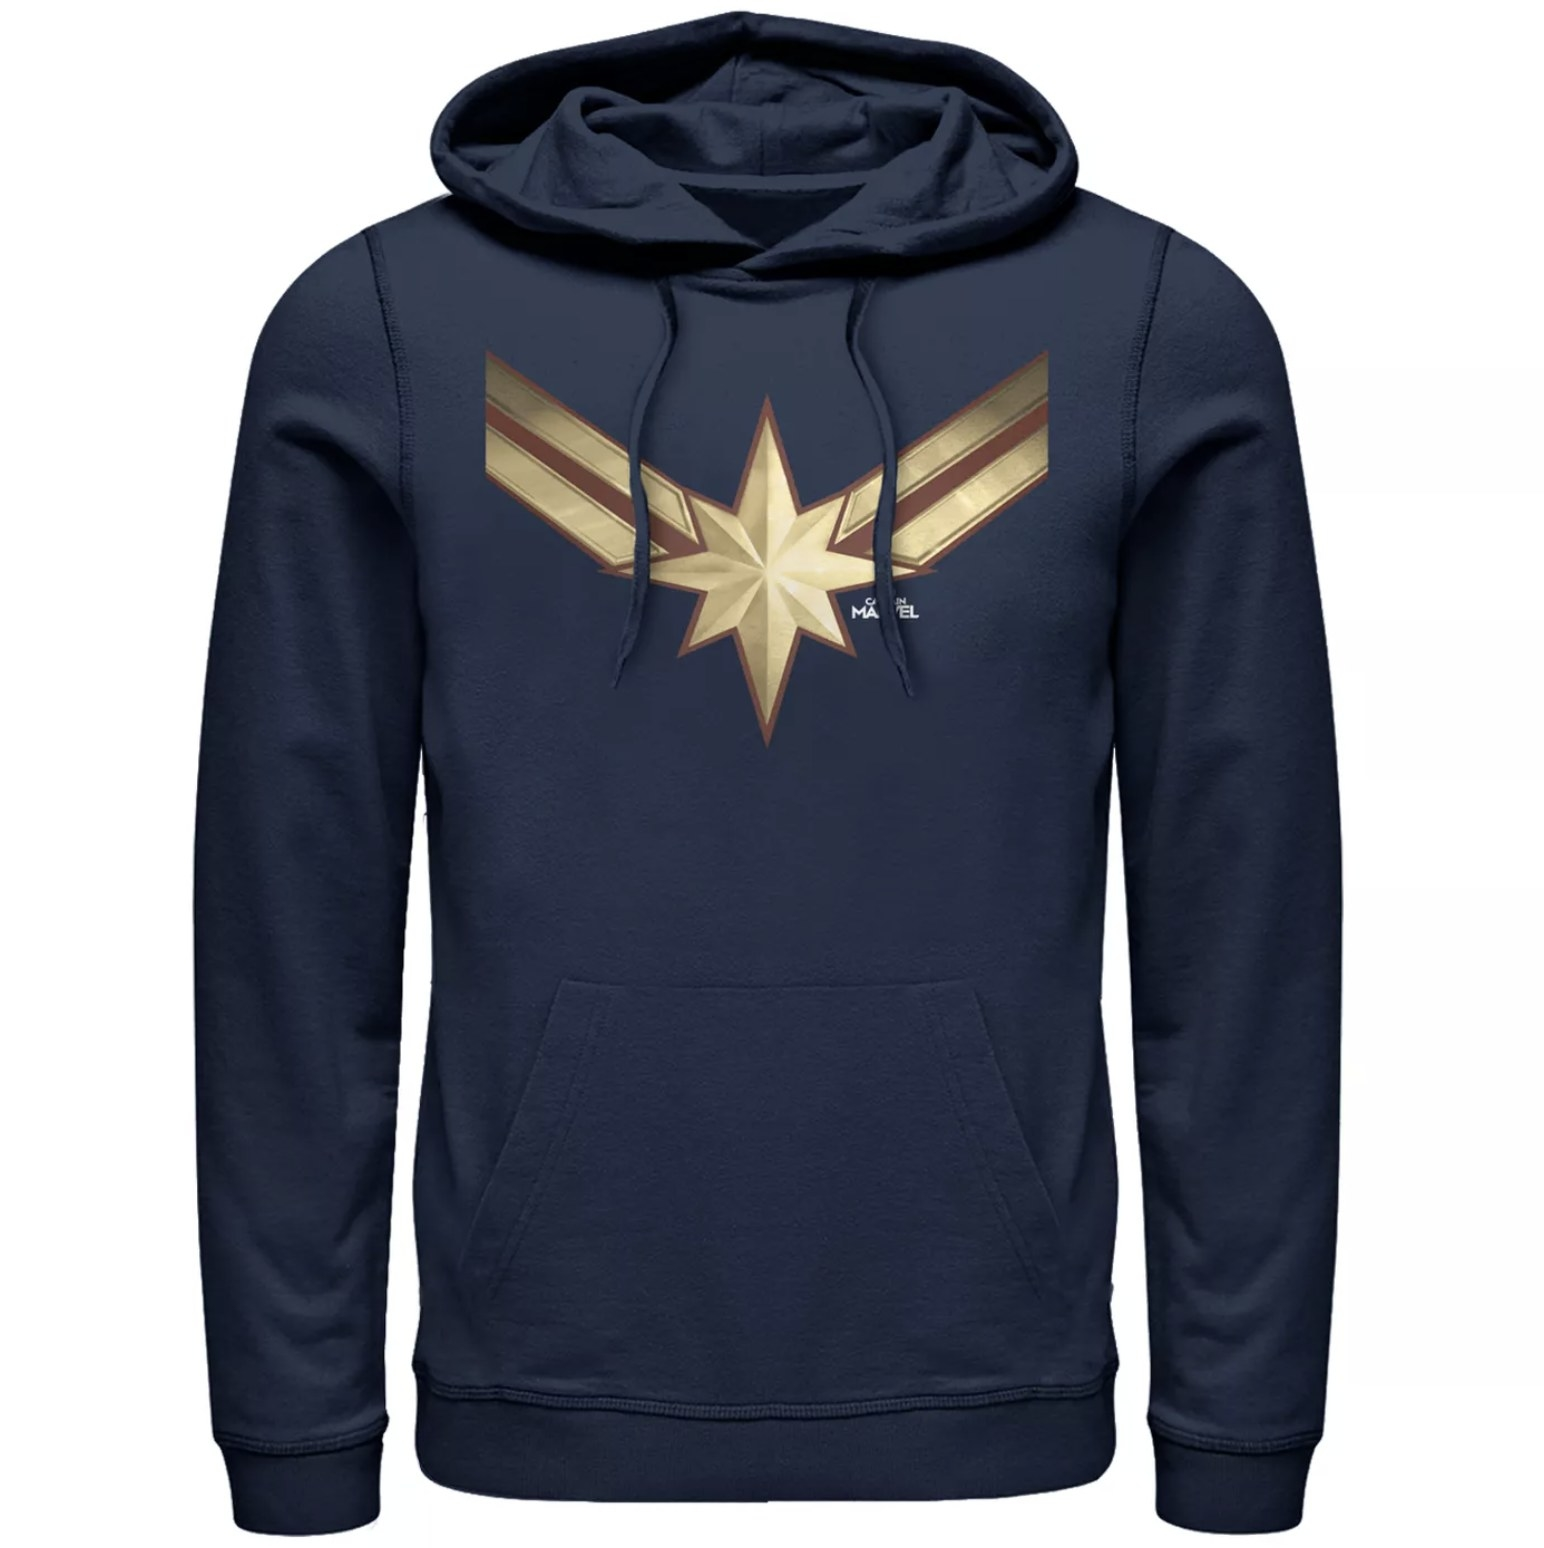 A navy blue men's pullover hoodie with the Captain Marvel star symbol on the chest